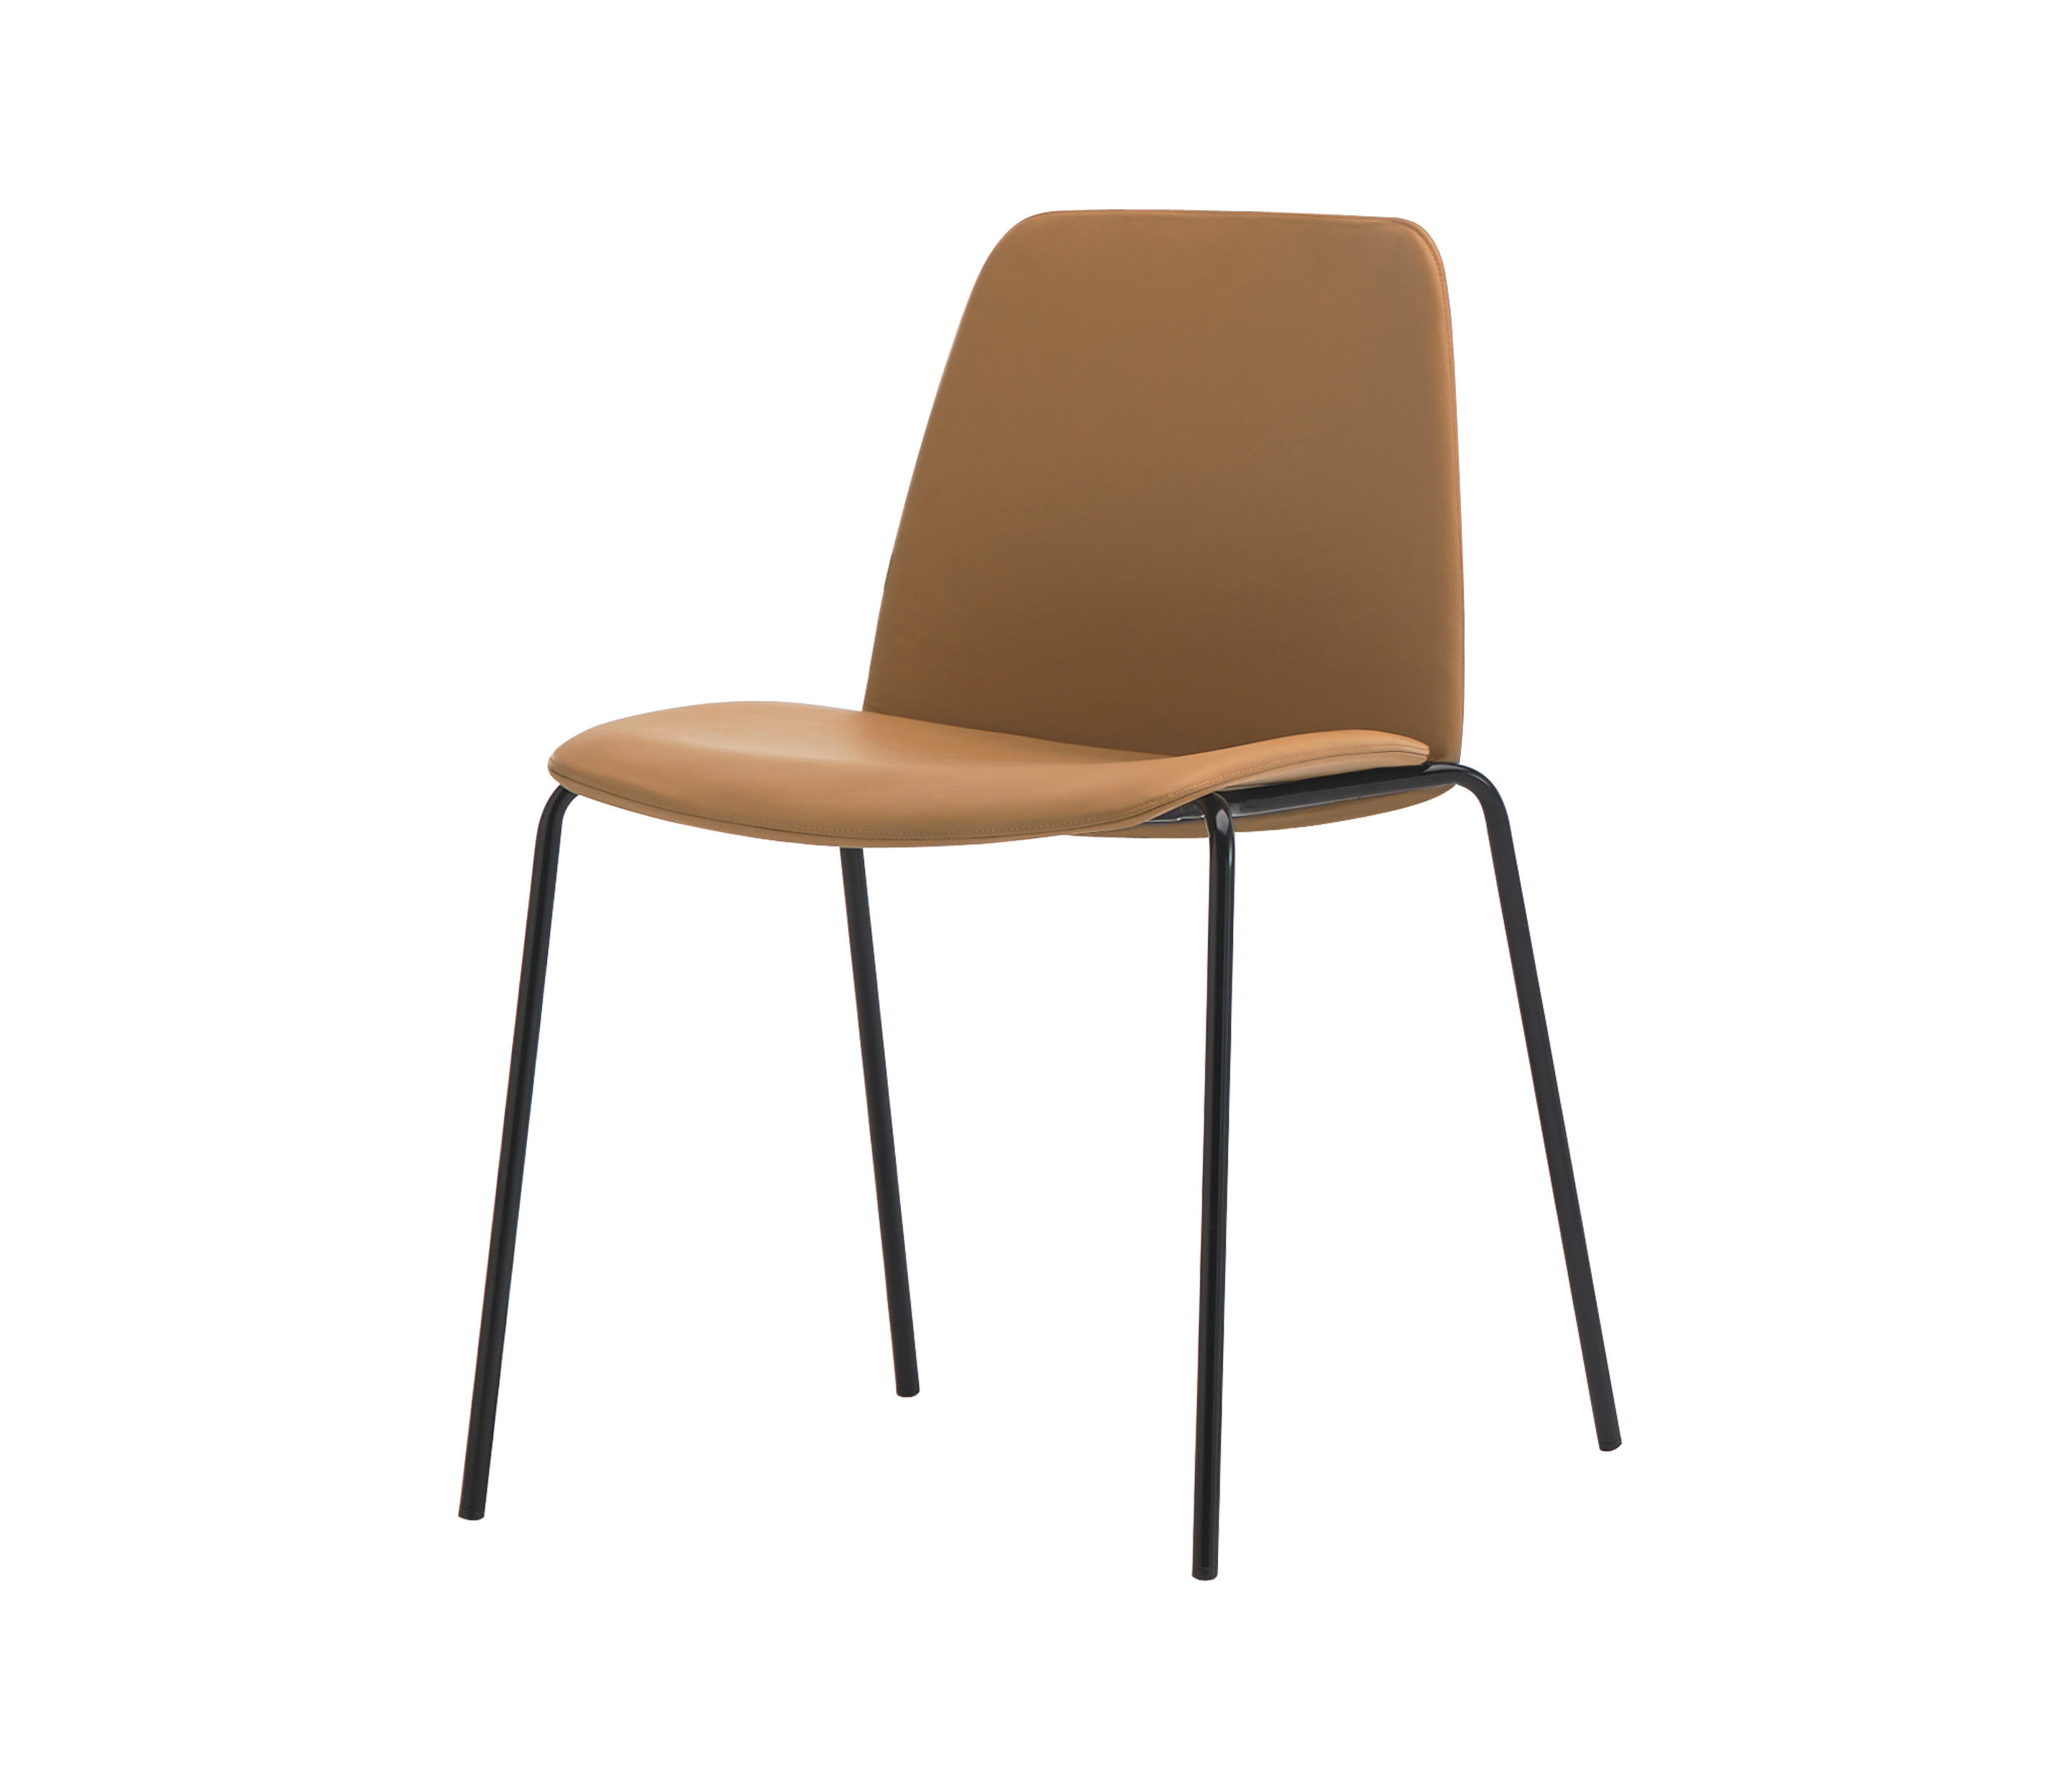 UNNIA TAPIZ - Chairs from Inclass | Architonic